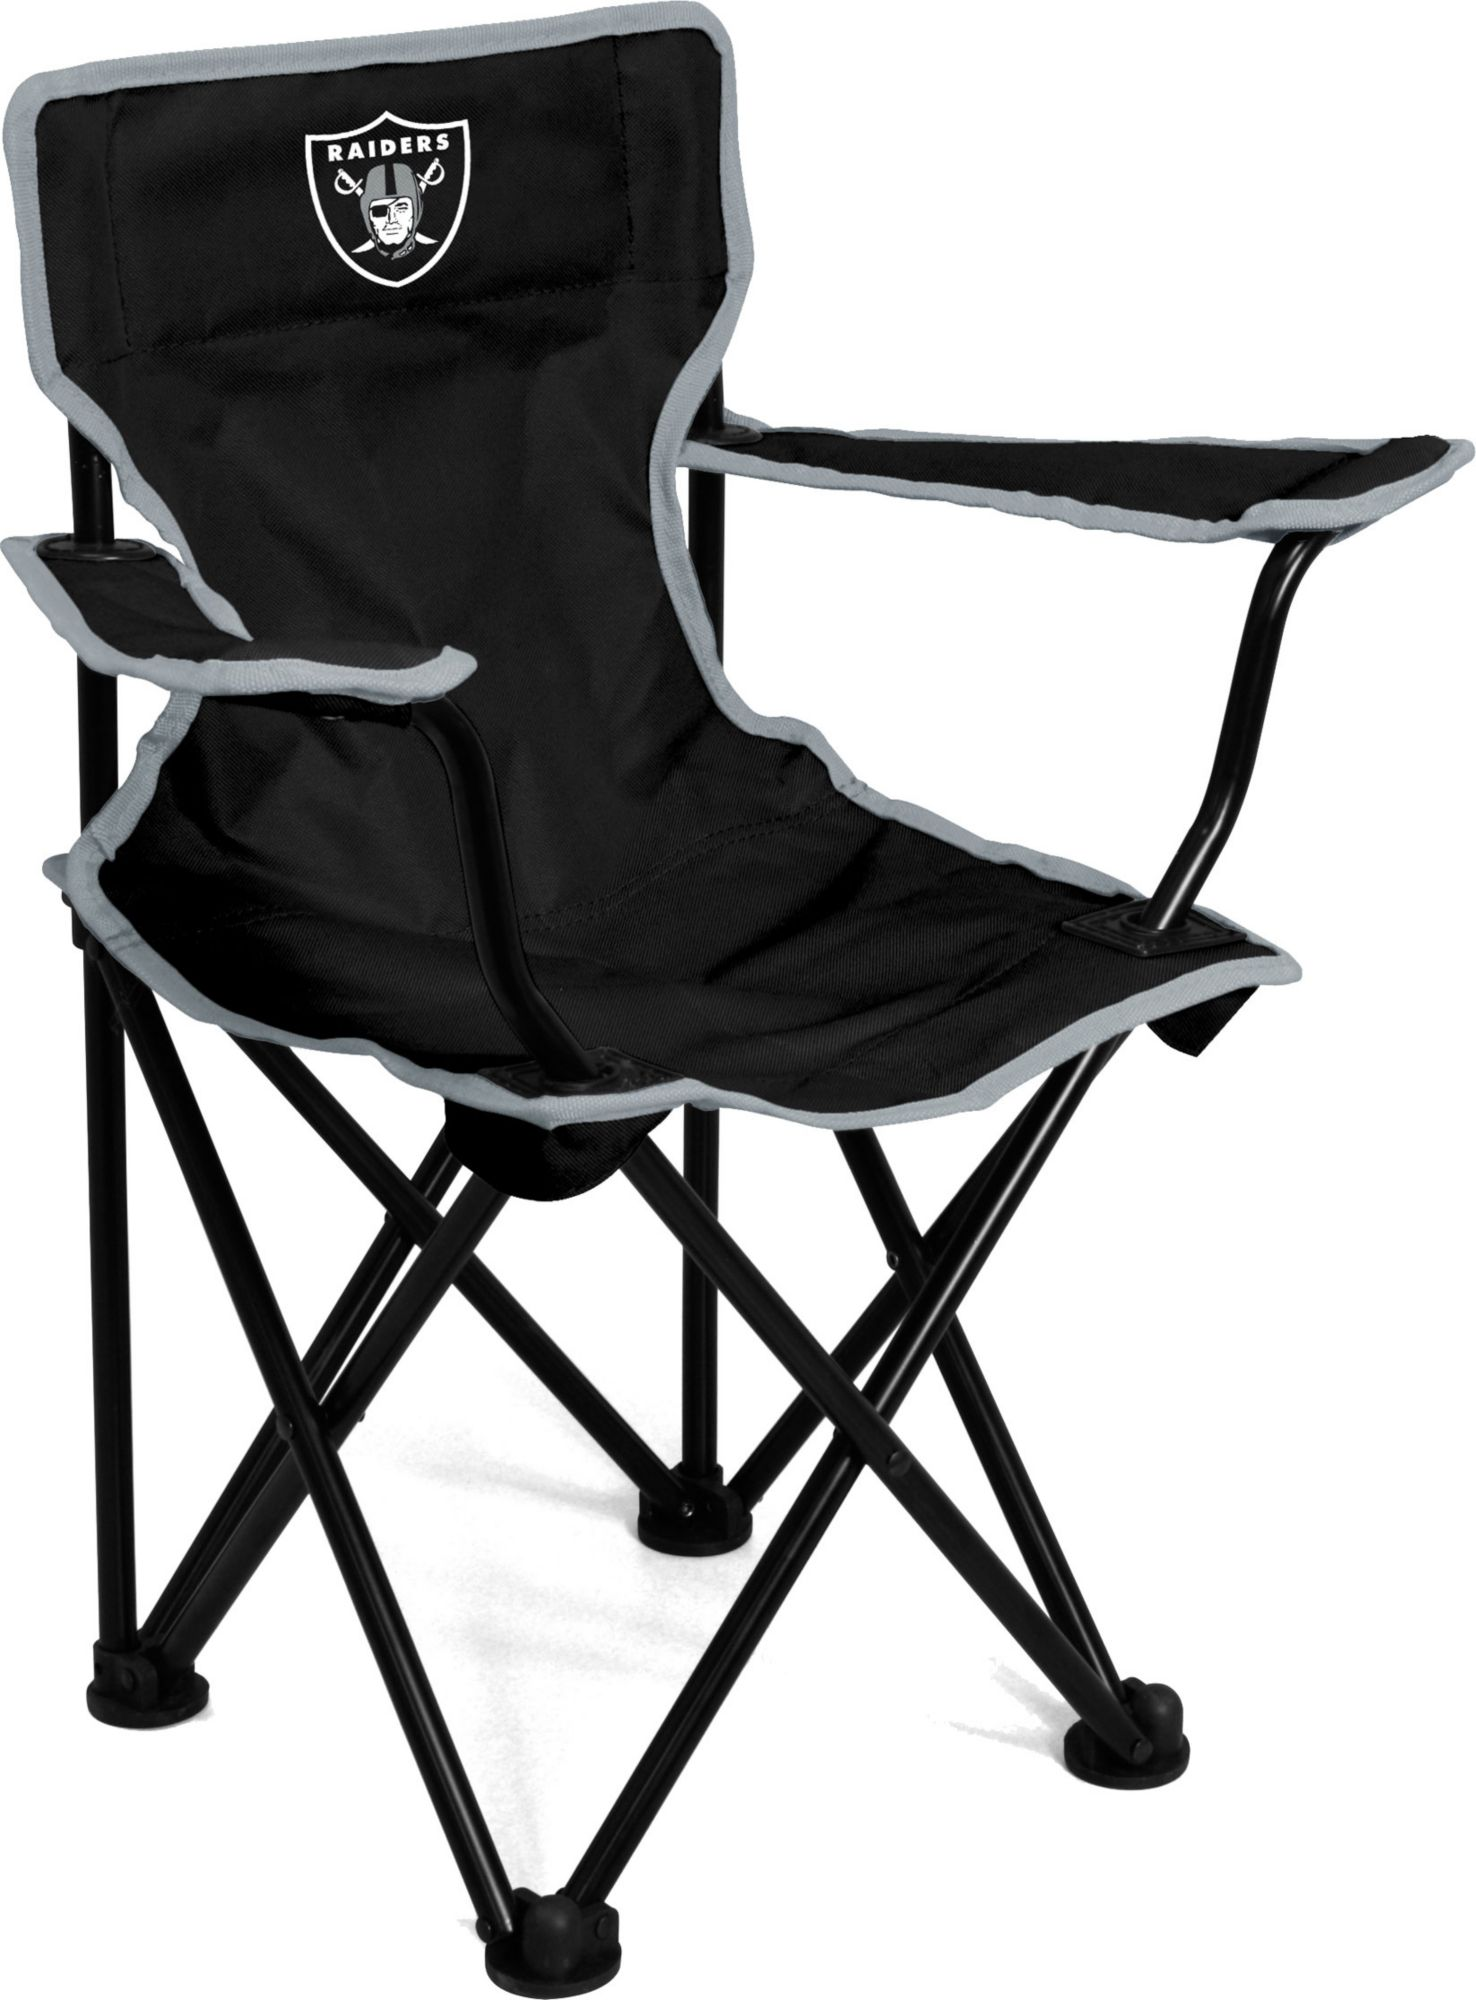 Exceptionnel Oakland Raiders Toddler Chair